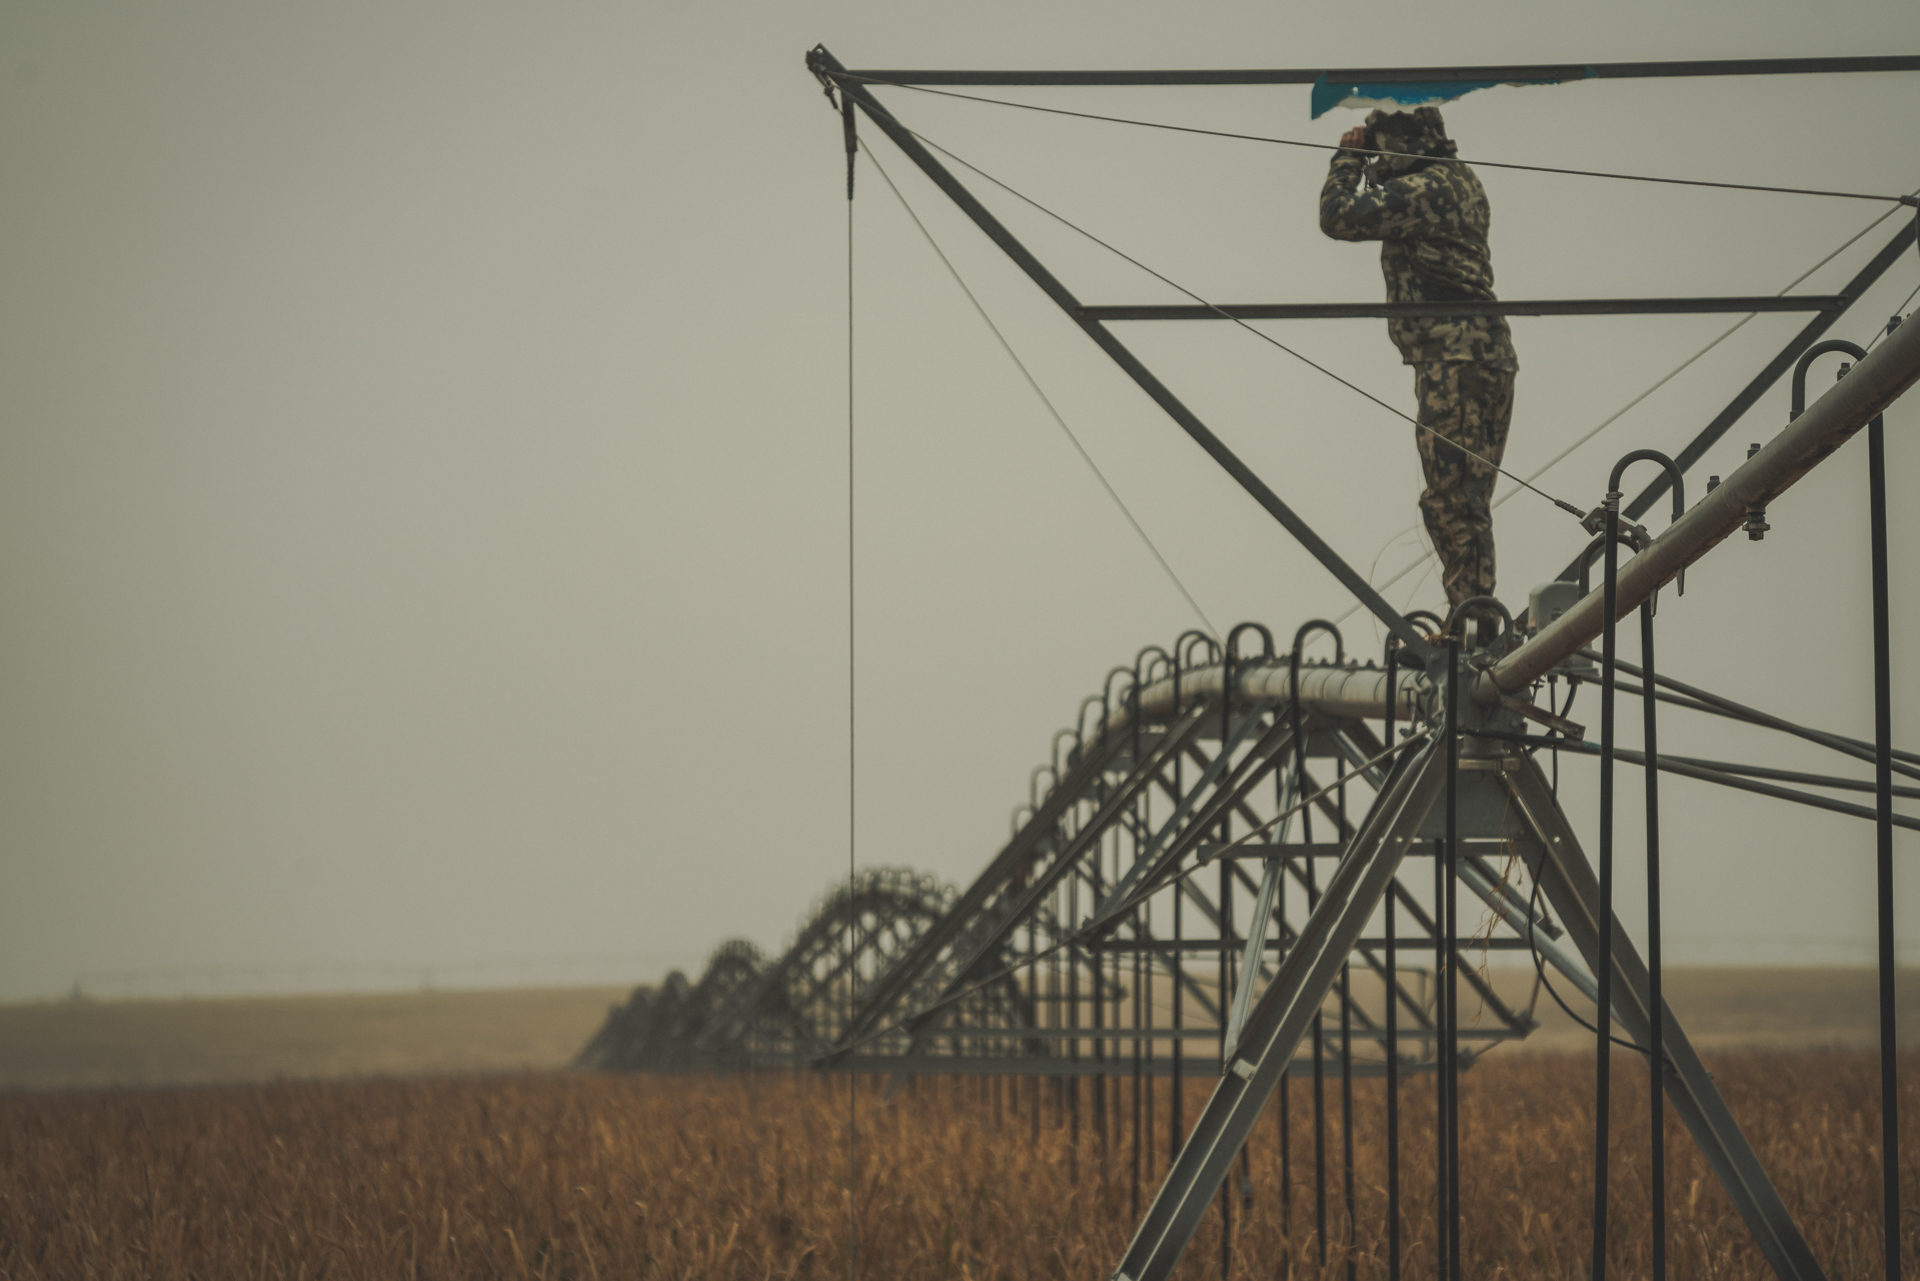 Our eye naturally follows the center pivot irrigation line to the hunter above.